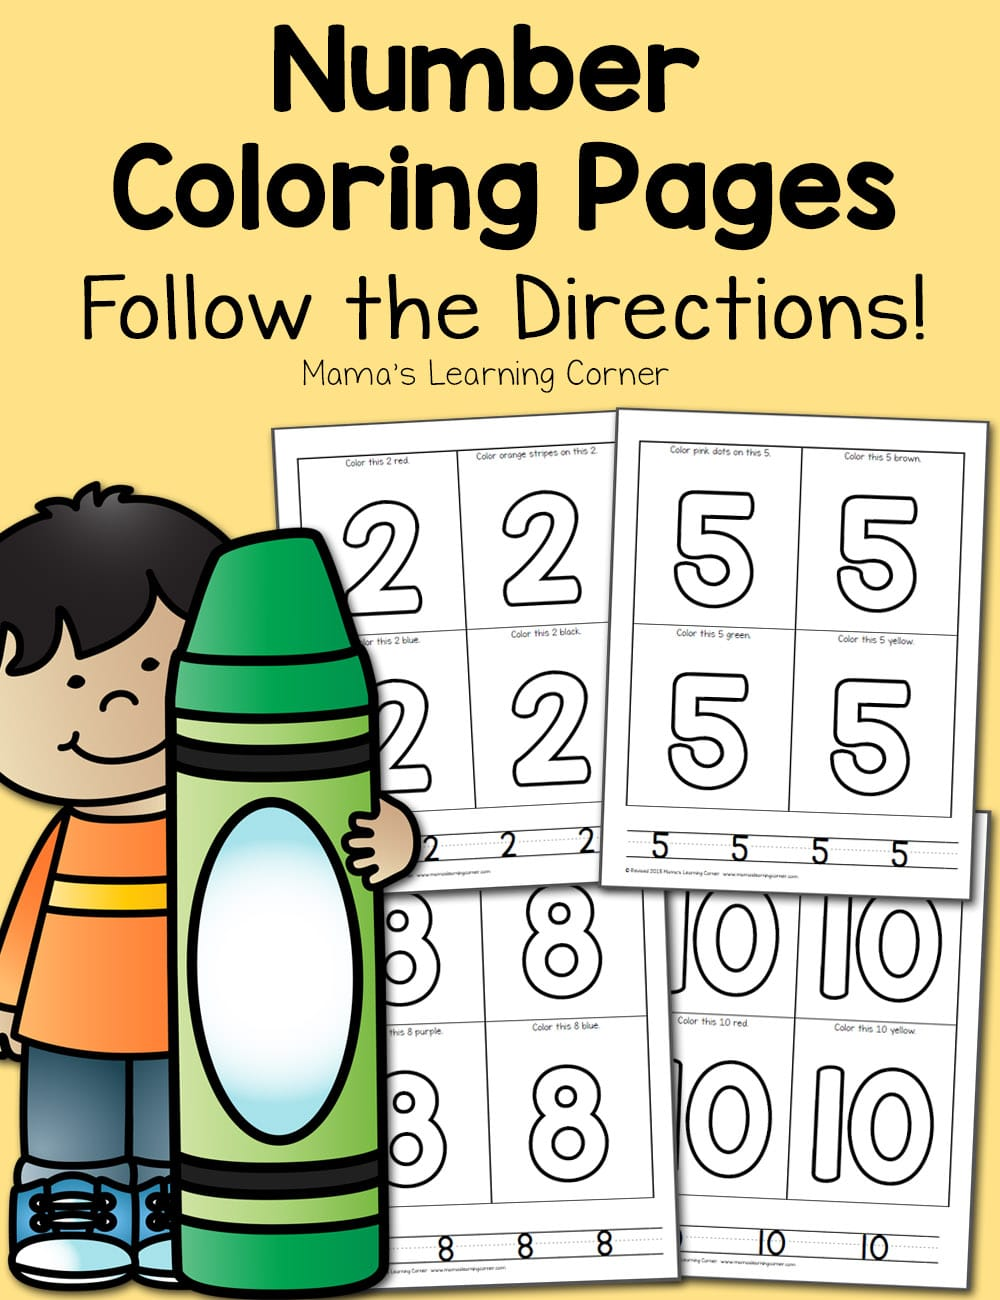 Number-Coloring-Pages